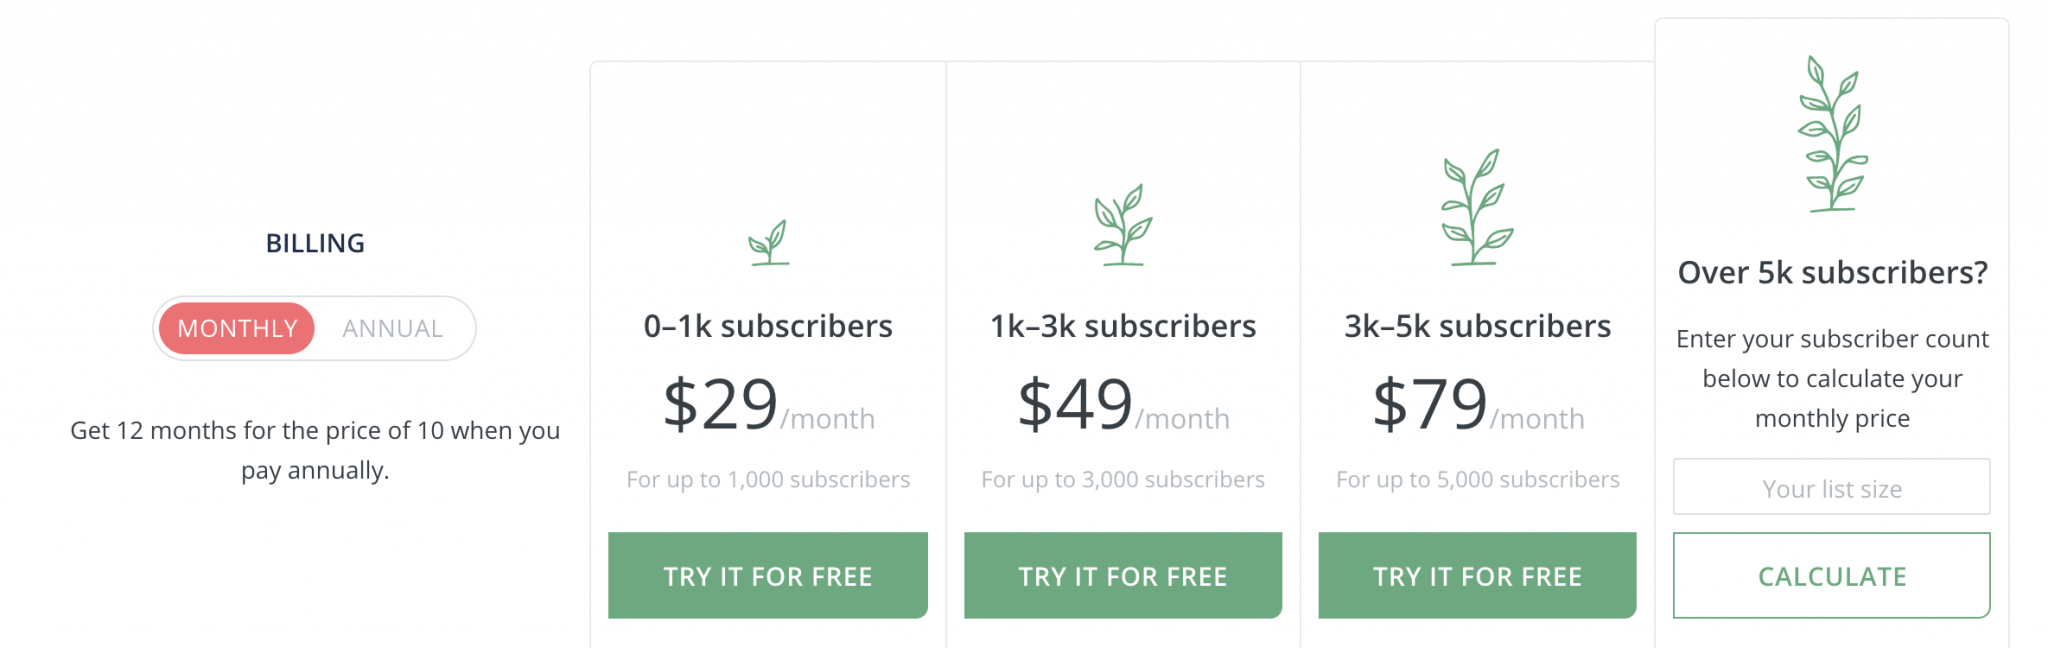 Online Coupon May 2020 Convertkit Email Marketing